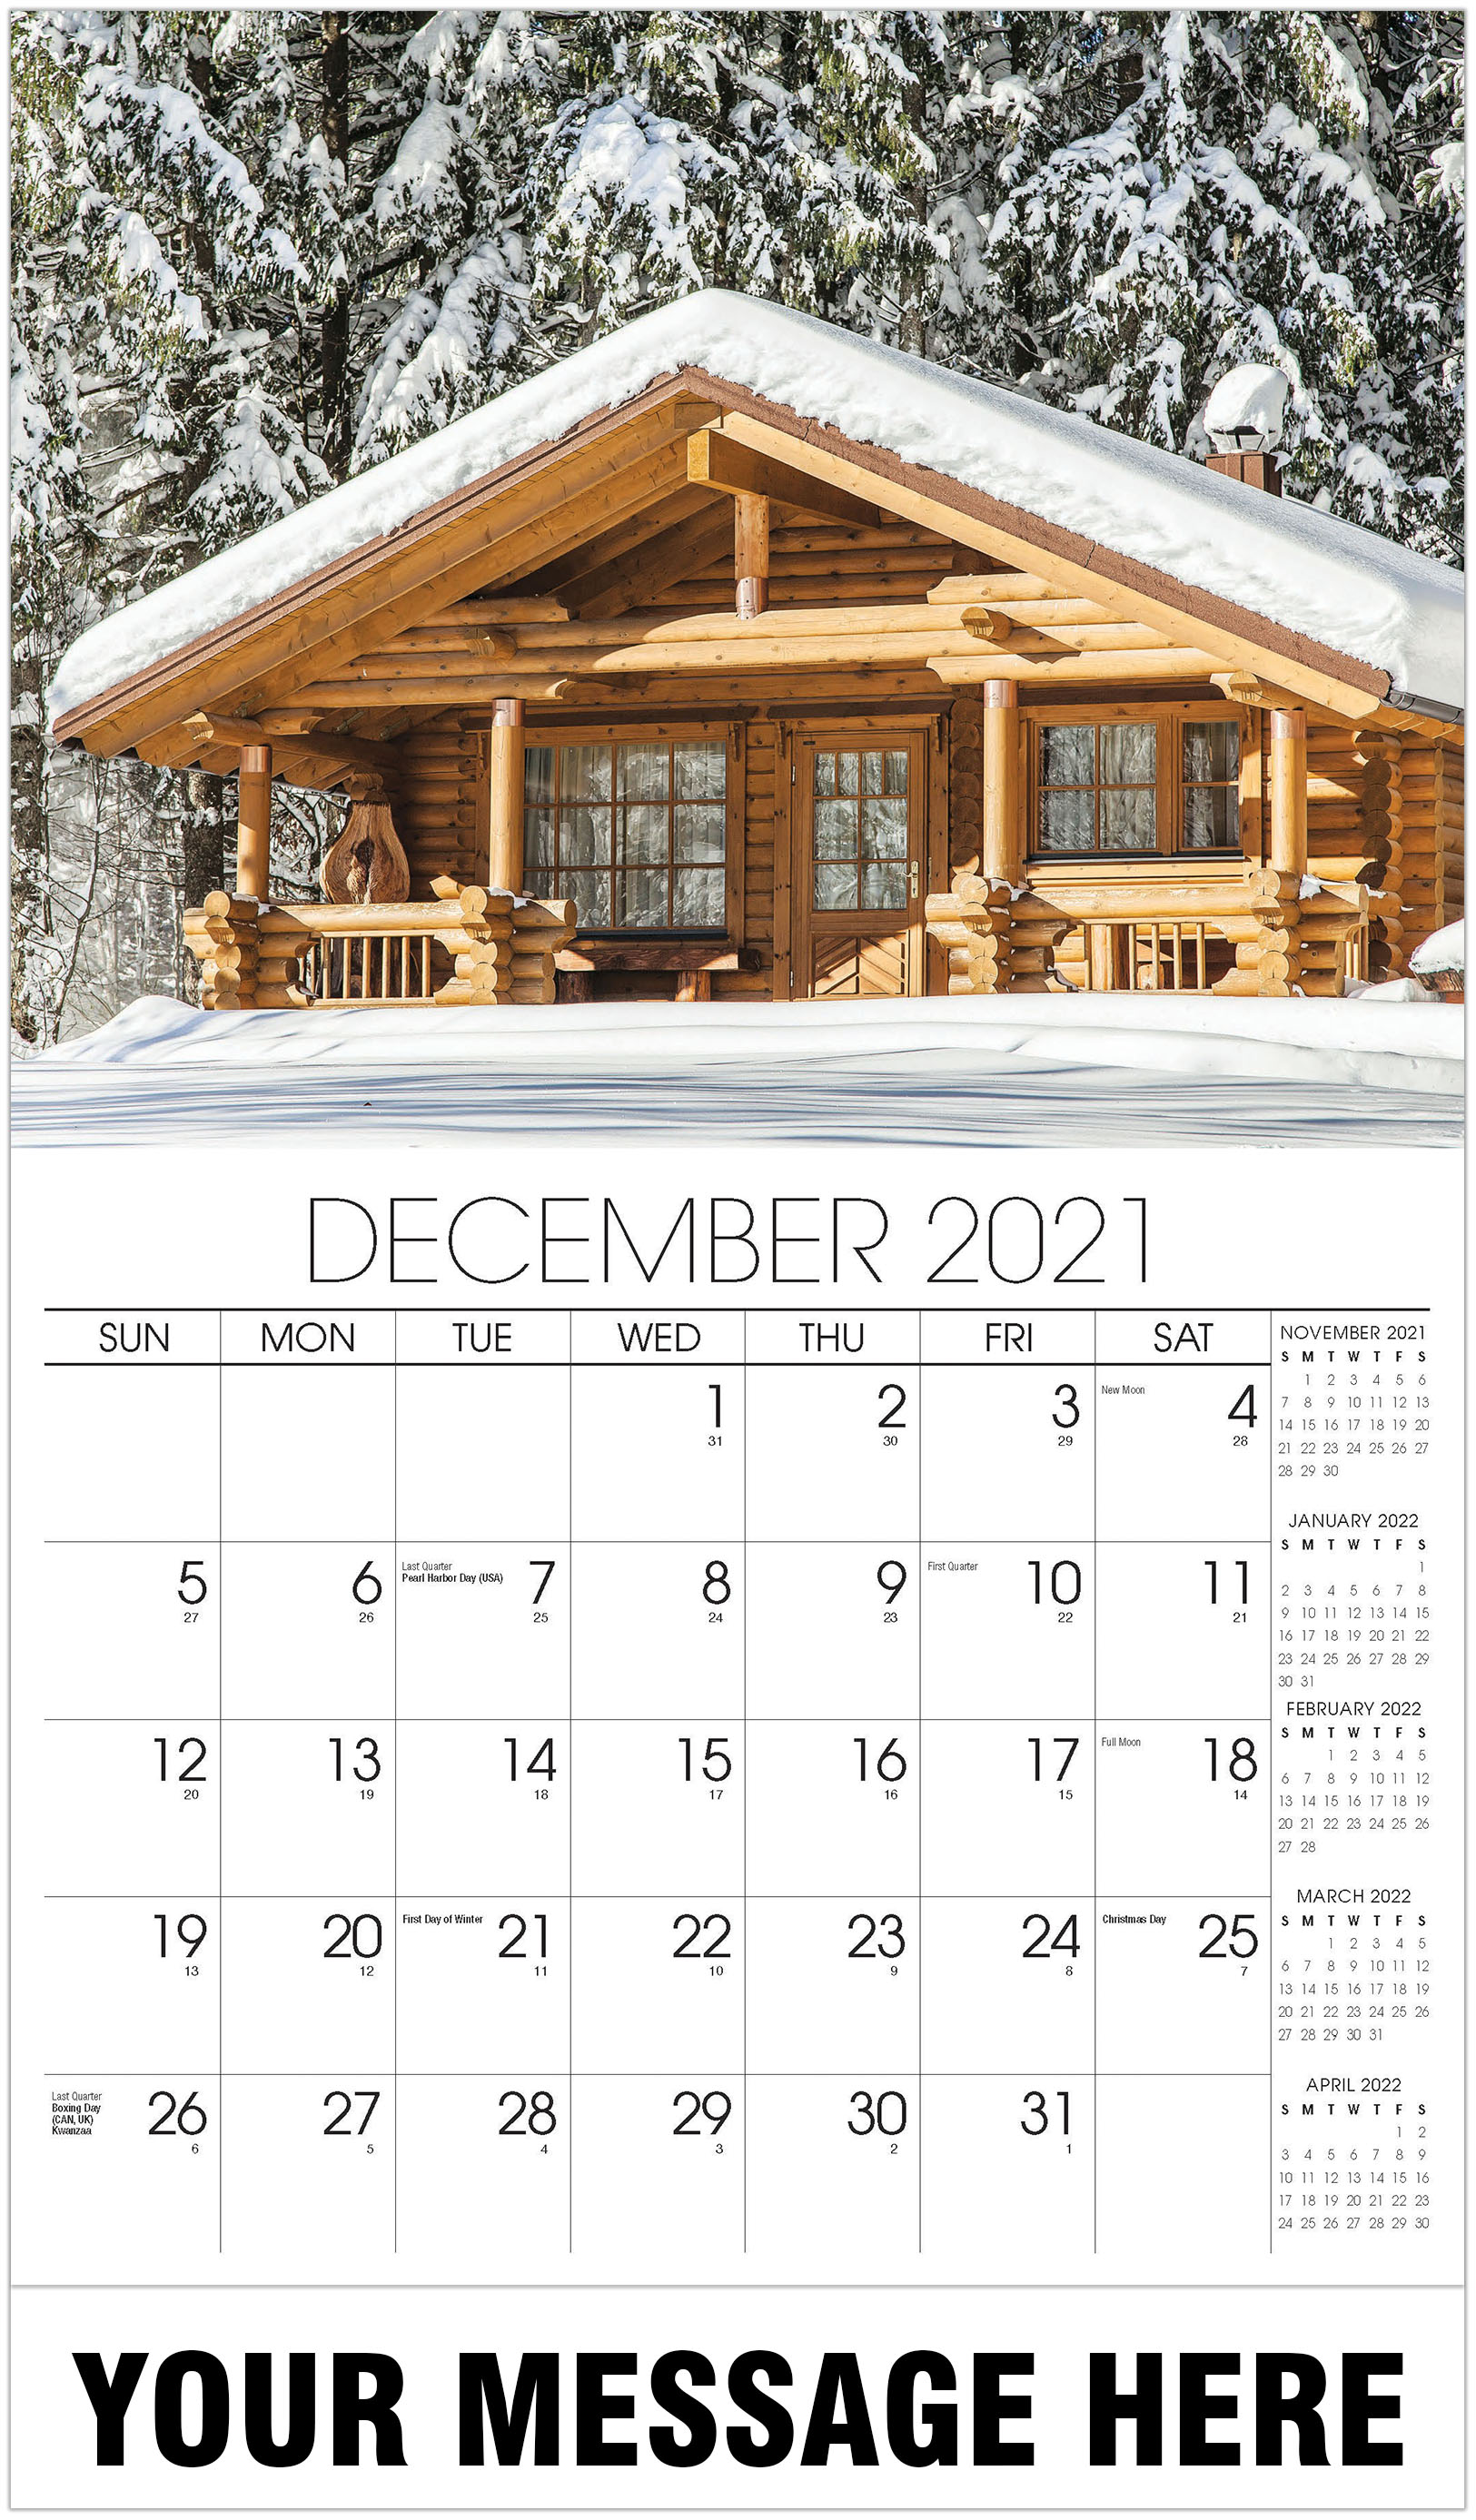 Luxury Homes Calendar - December 2021 - Homes 2021 Promotional Calendar